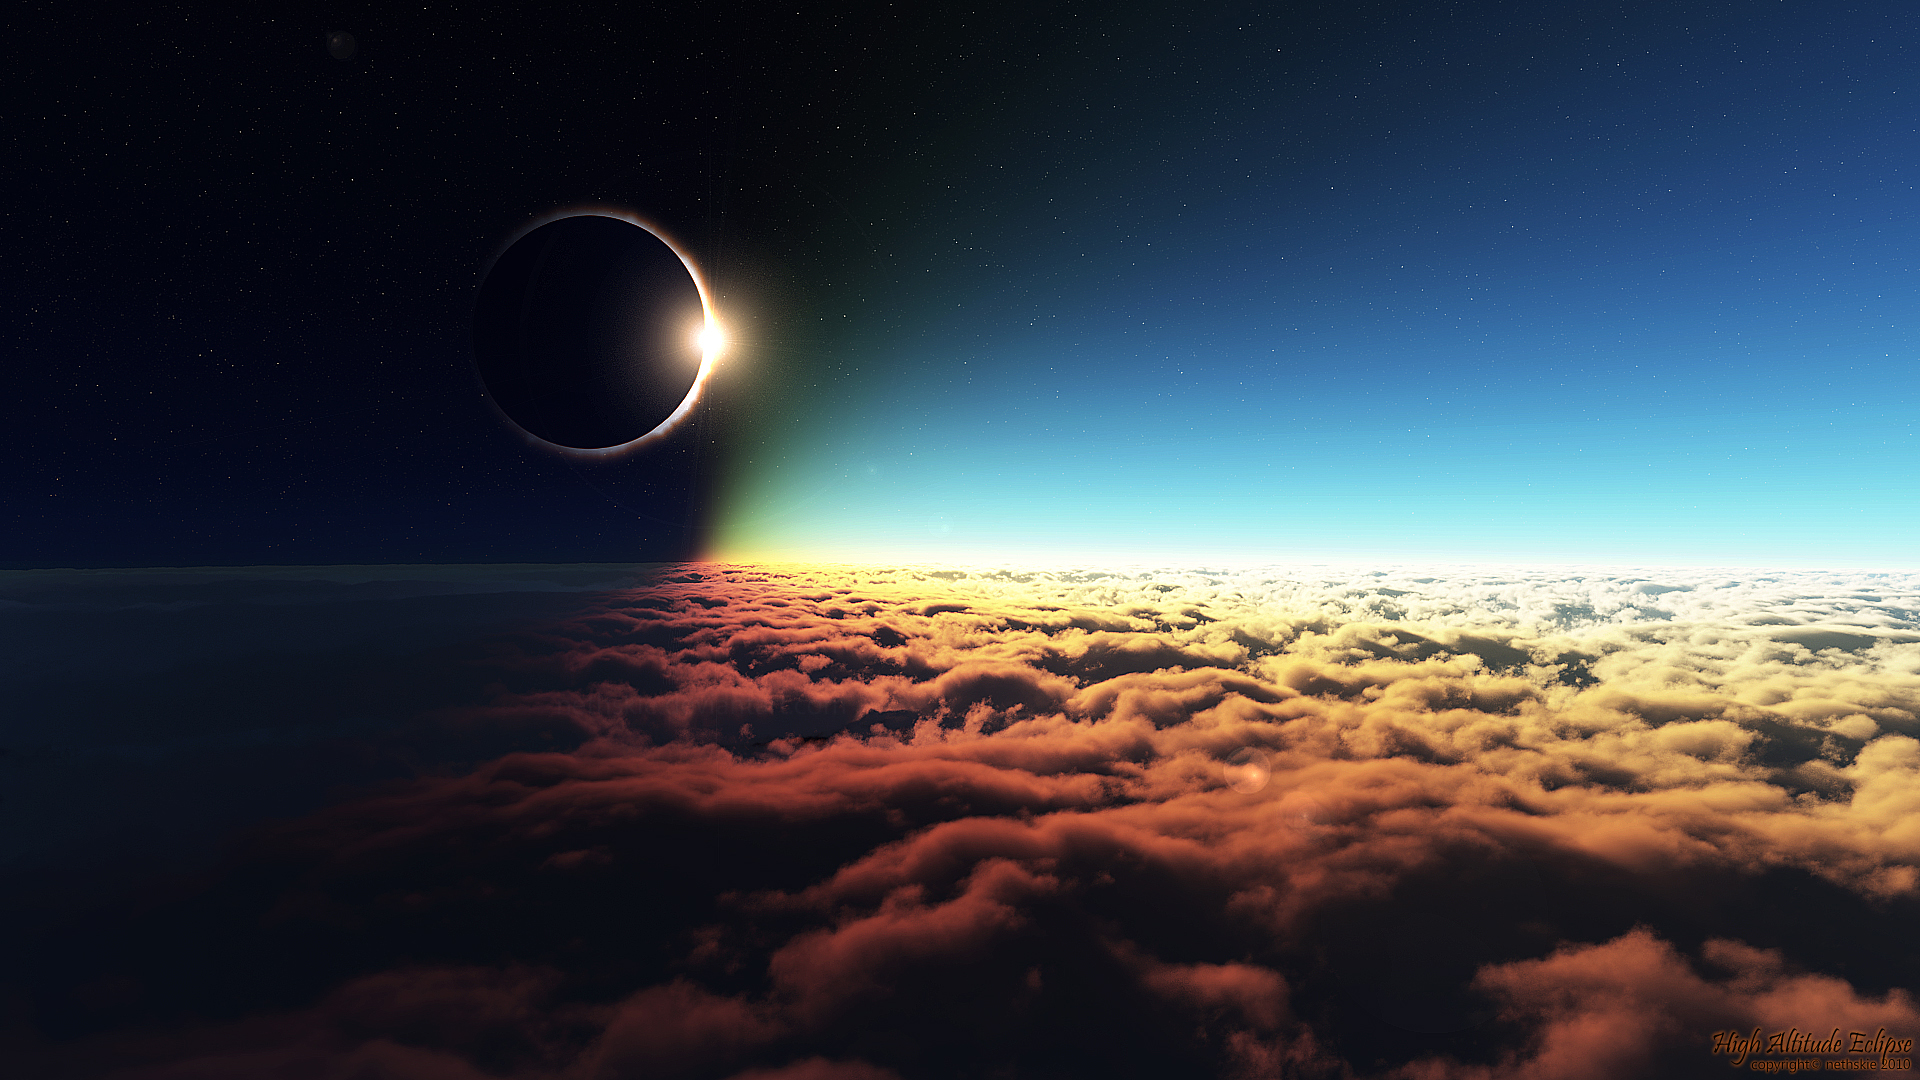 Eclipse over the Clouds Photoshoot 1046.13 Kb